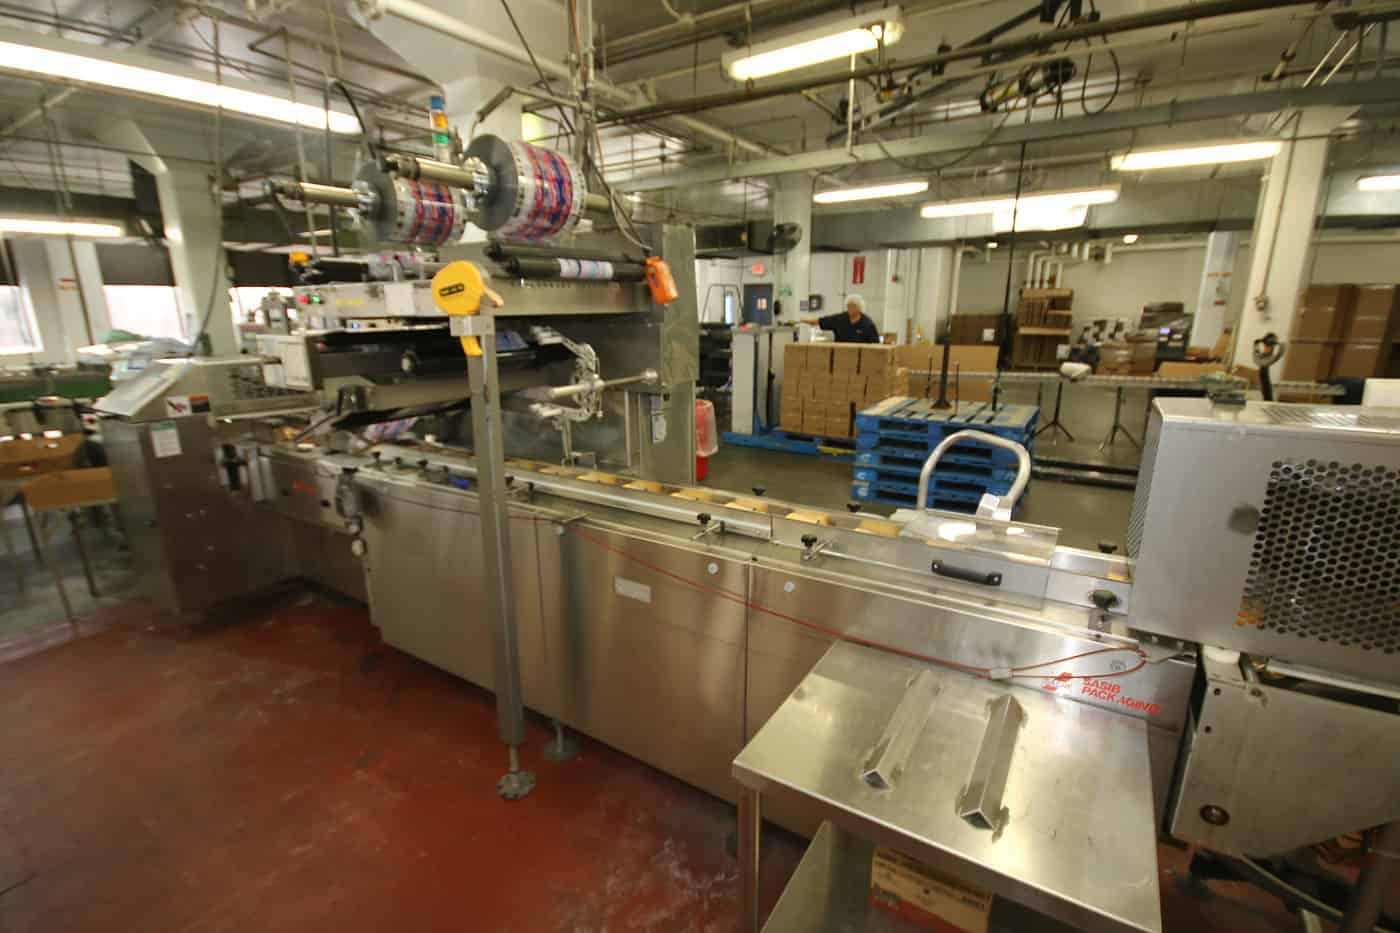 (4) KUSTNER IWS PACKAGING LINES